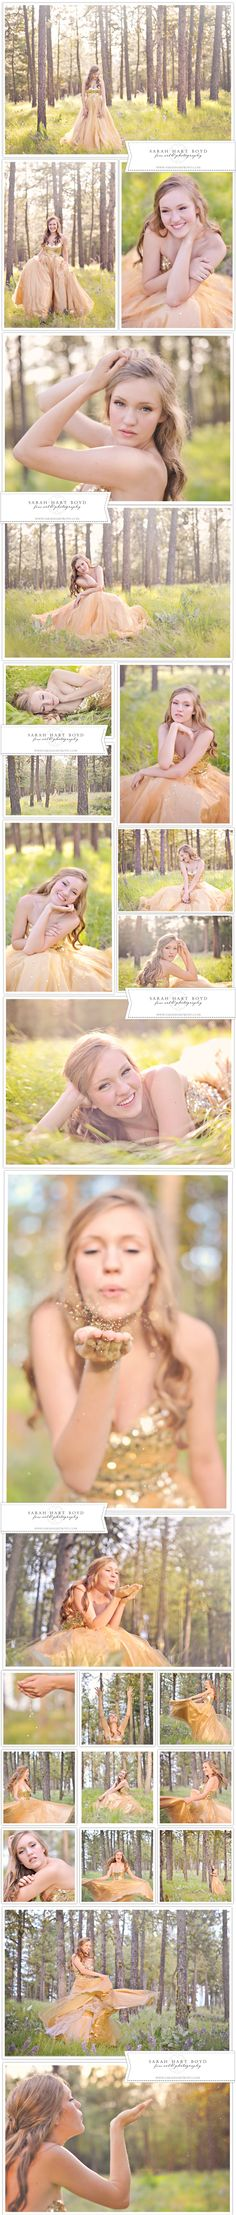 I am kind of dying over this entire set! #photogpinspiration